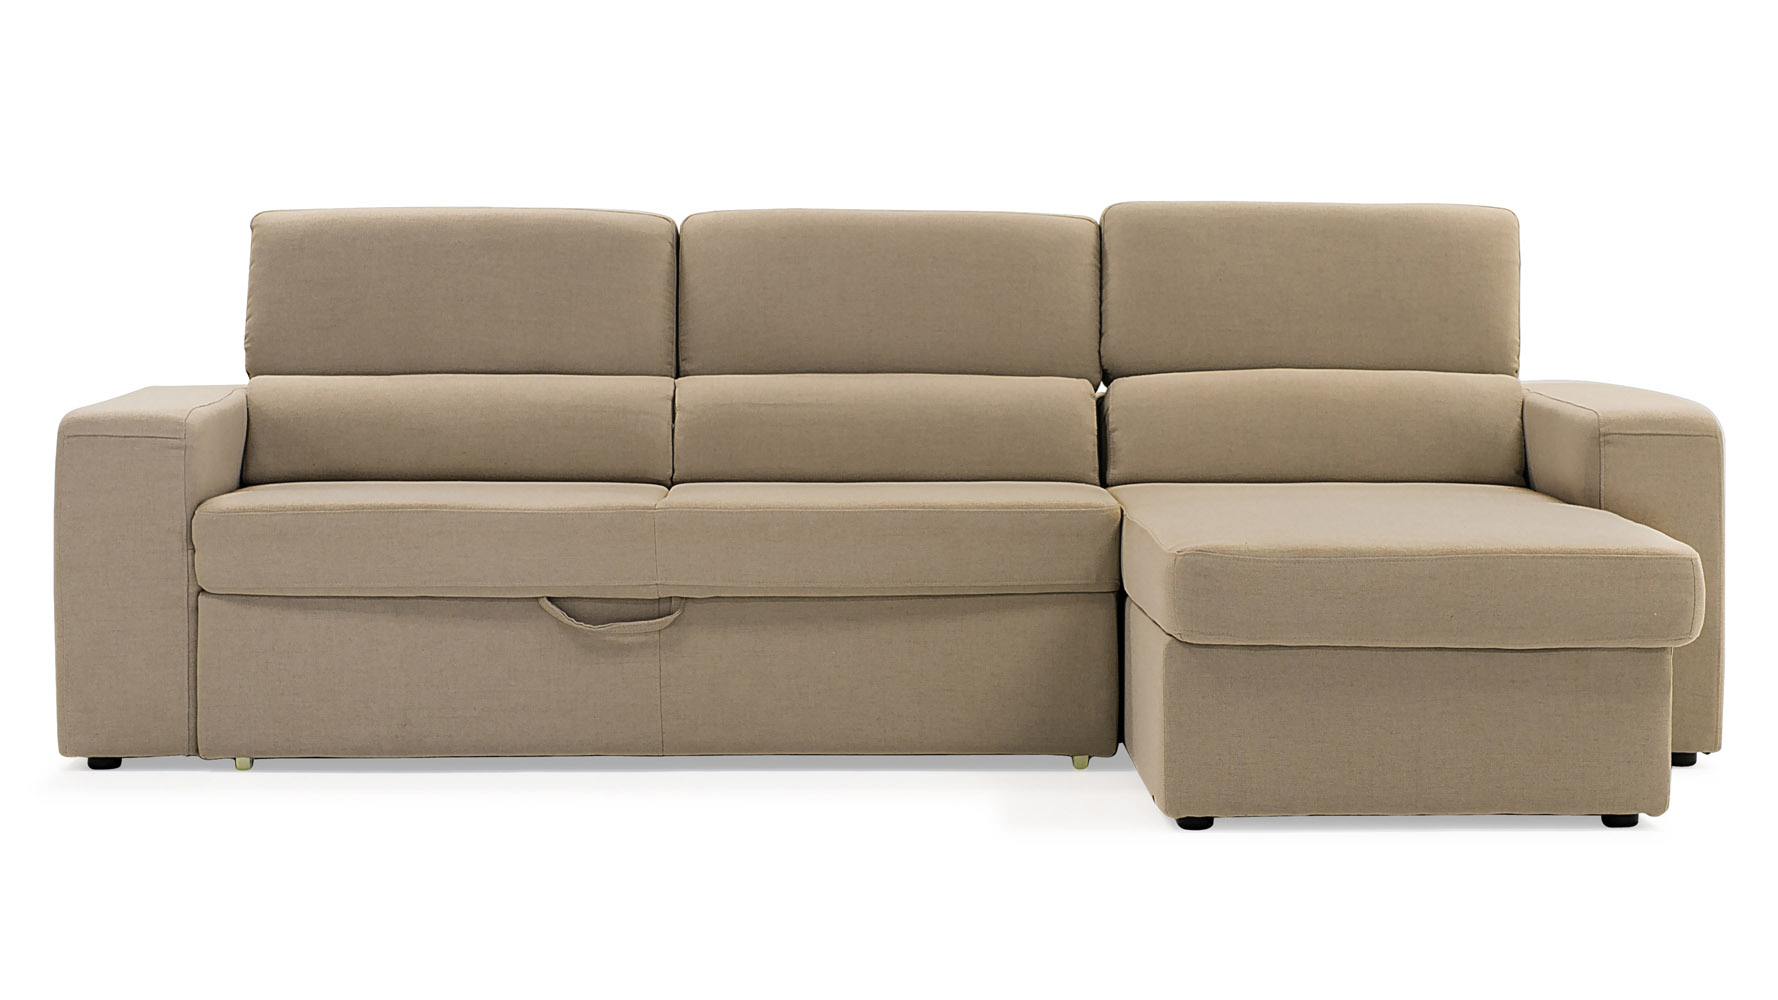 Clubber sleeper sofa refil sofa for Clubber sofa bed